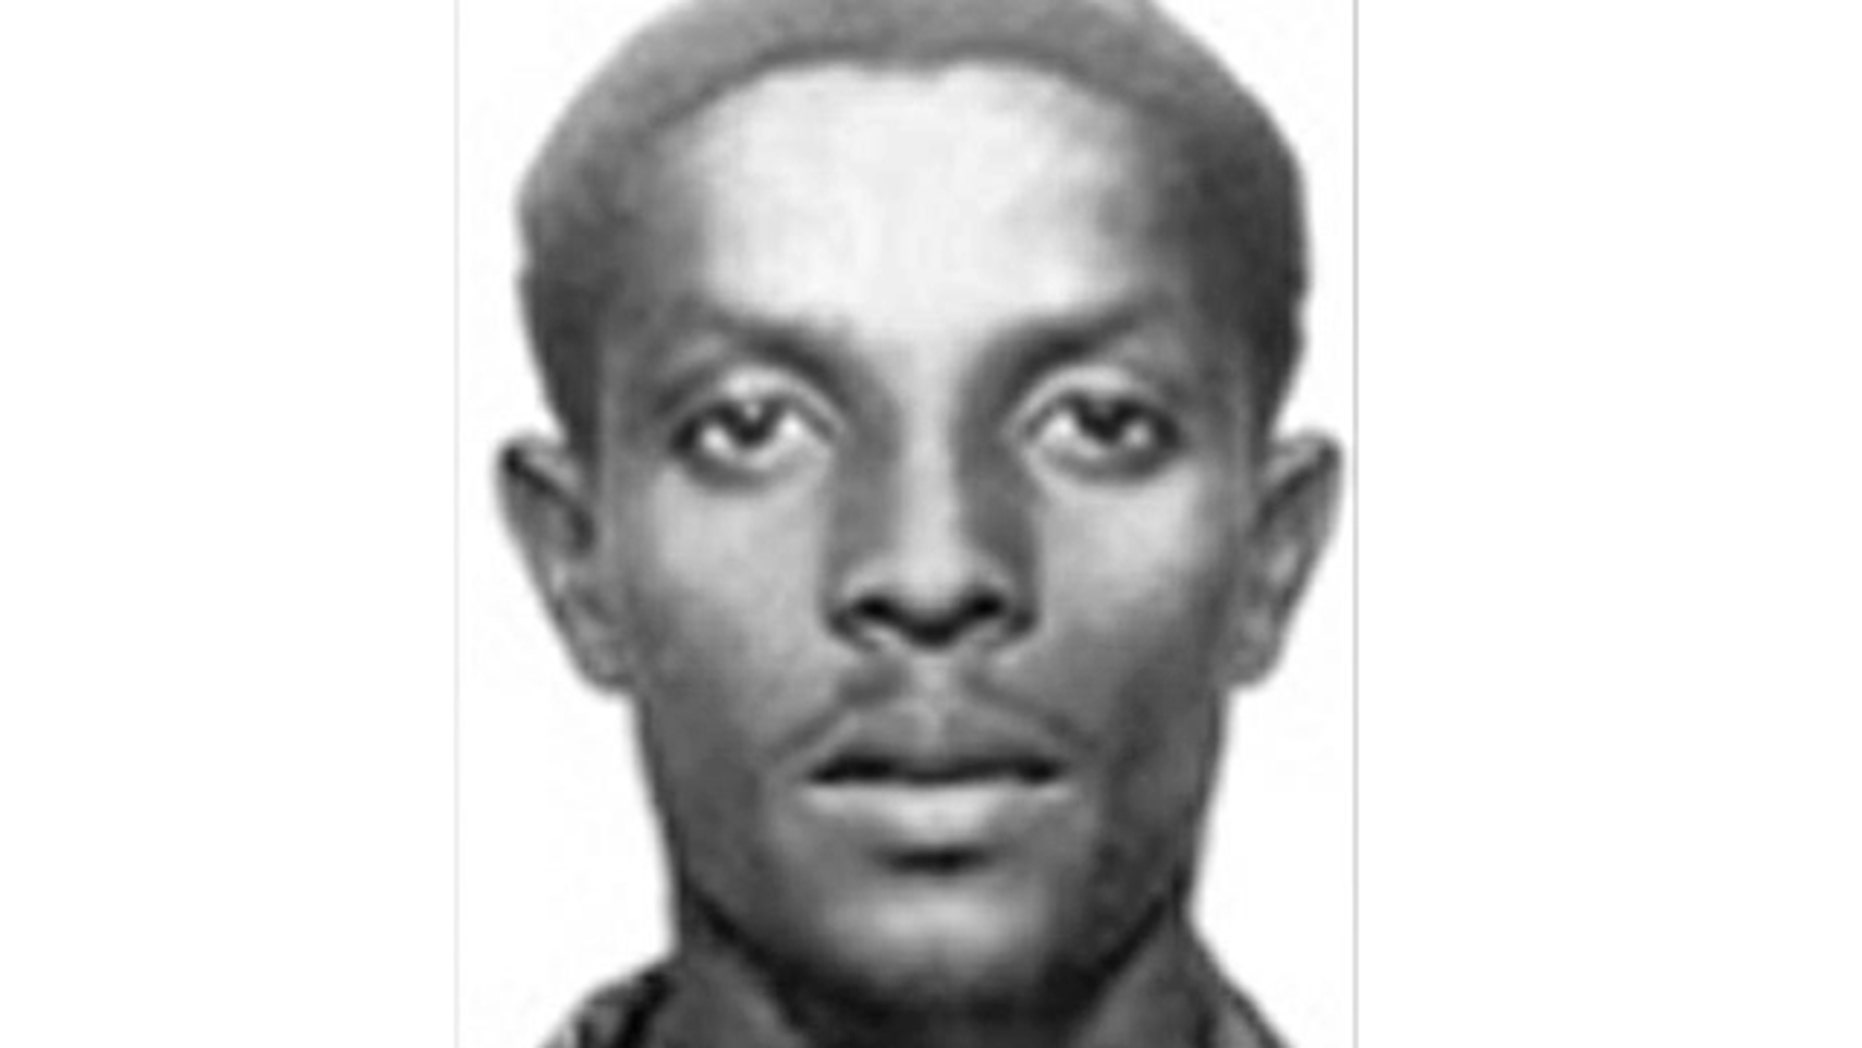 FILE - This undated photo provided by the Federal Bureau of Investigation shows Fazul Abdullah Mohammed, the Al Qaeda operative behind the 1998 U.S. Embassy bombings in Kenya and Tanzania.